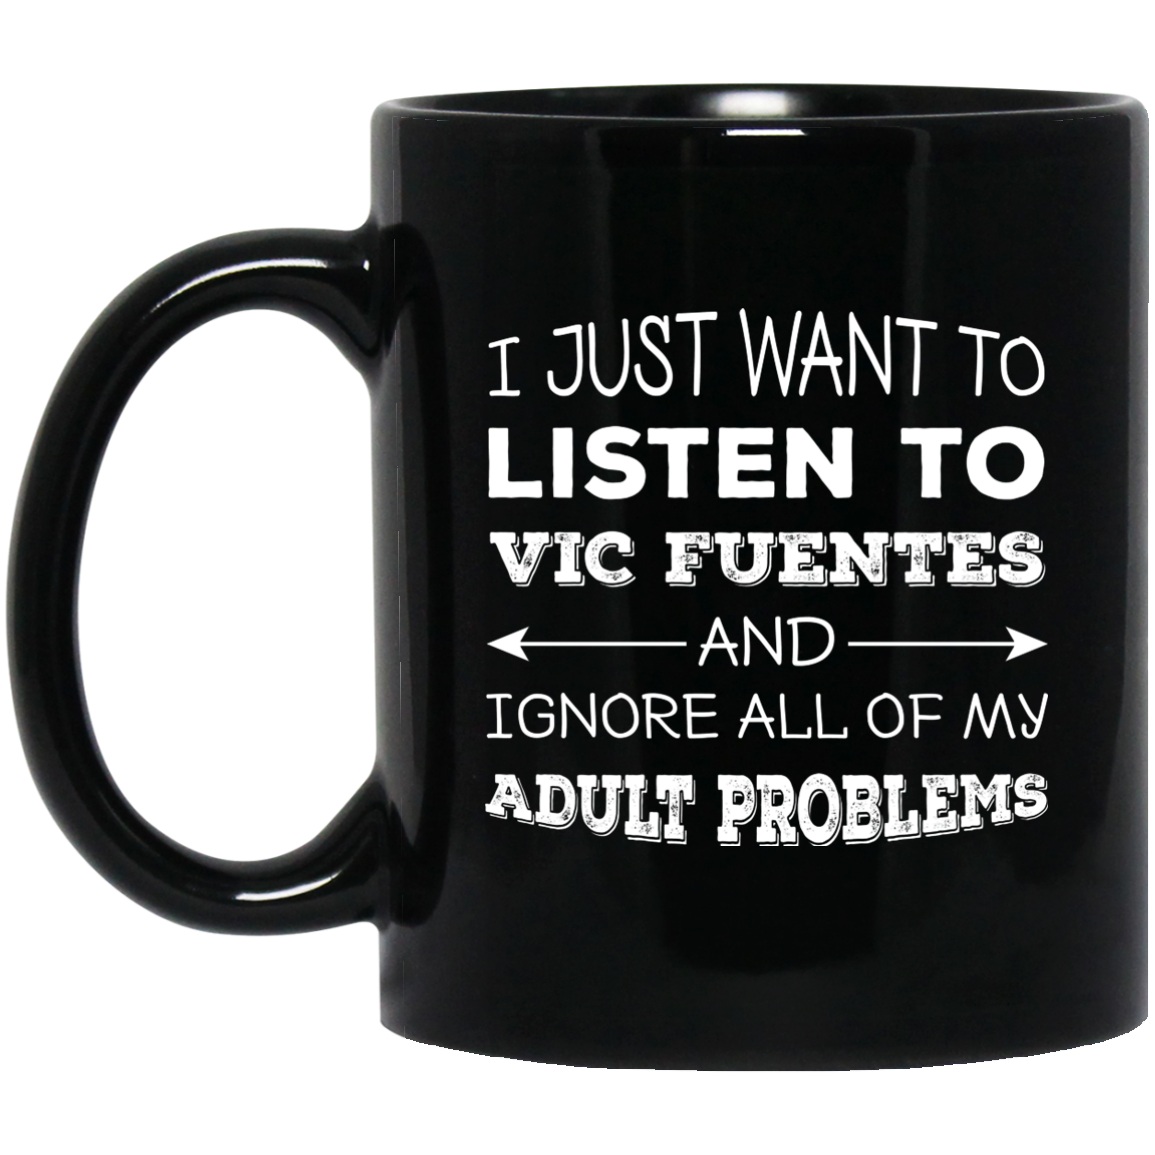 Vic Fuentes Mug - Ignore All Of My Adult Problems